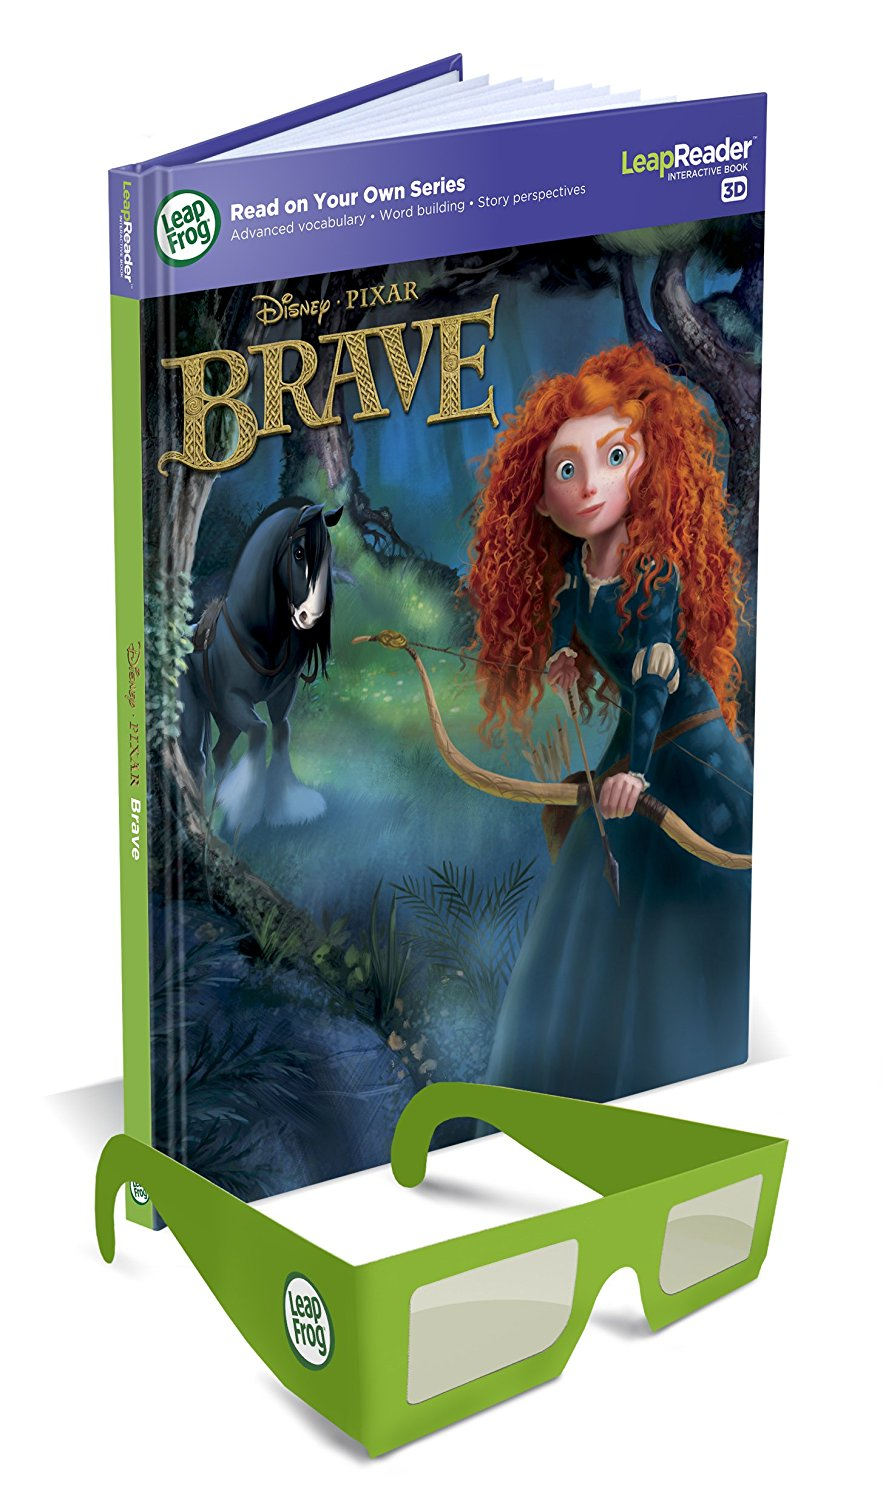 LeapReader Disney Pixar Brave 3D Book (Works with Tag), Travel to the rugged and... by